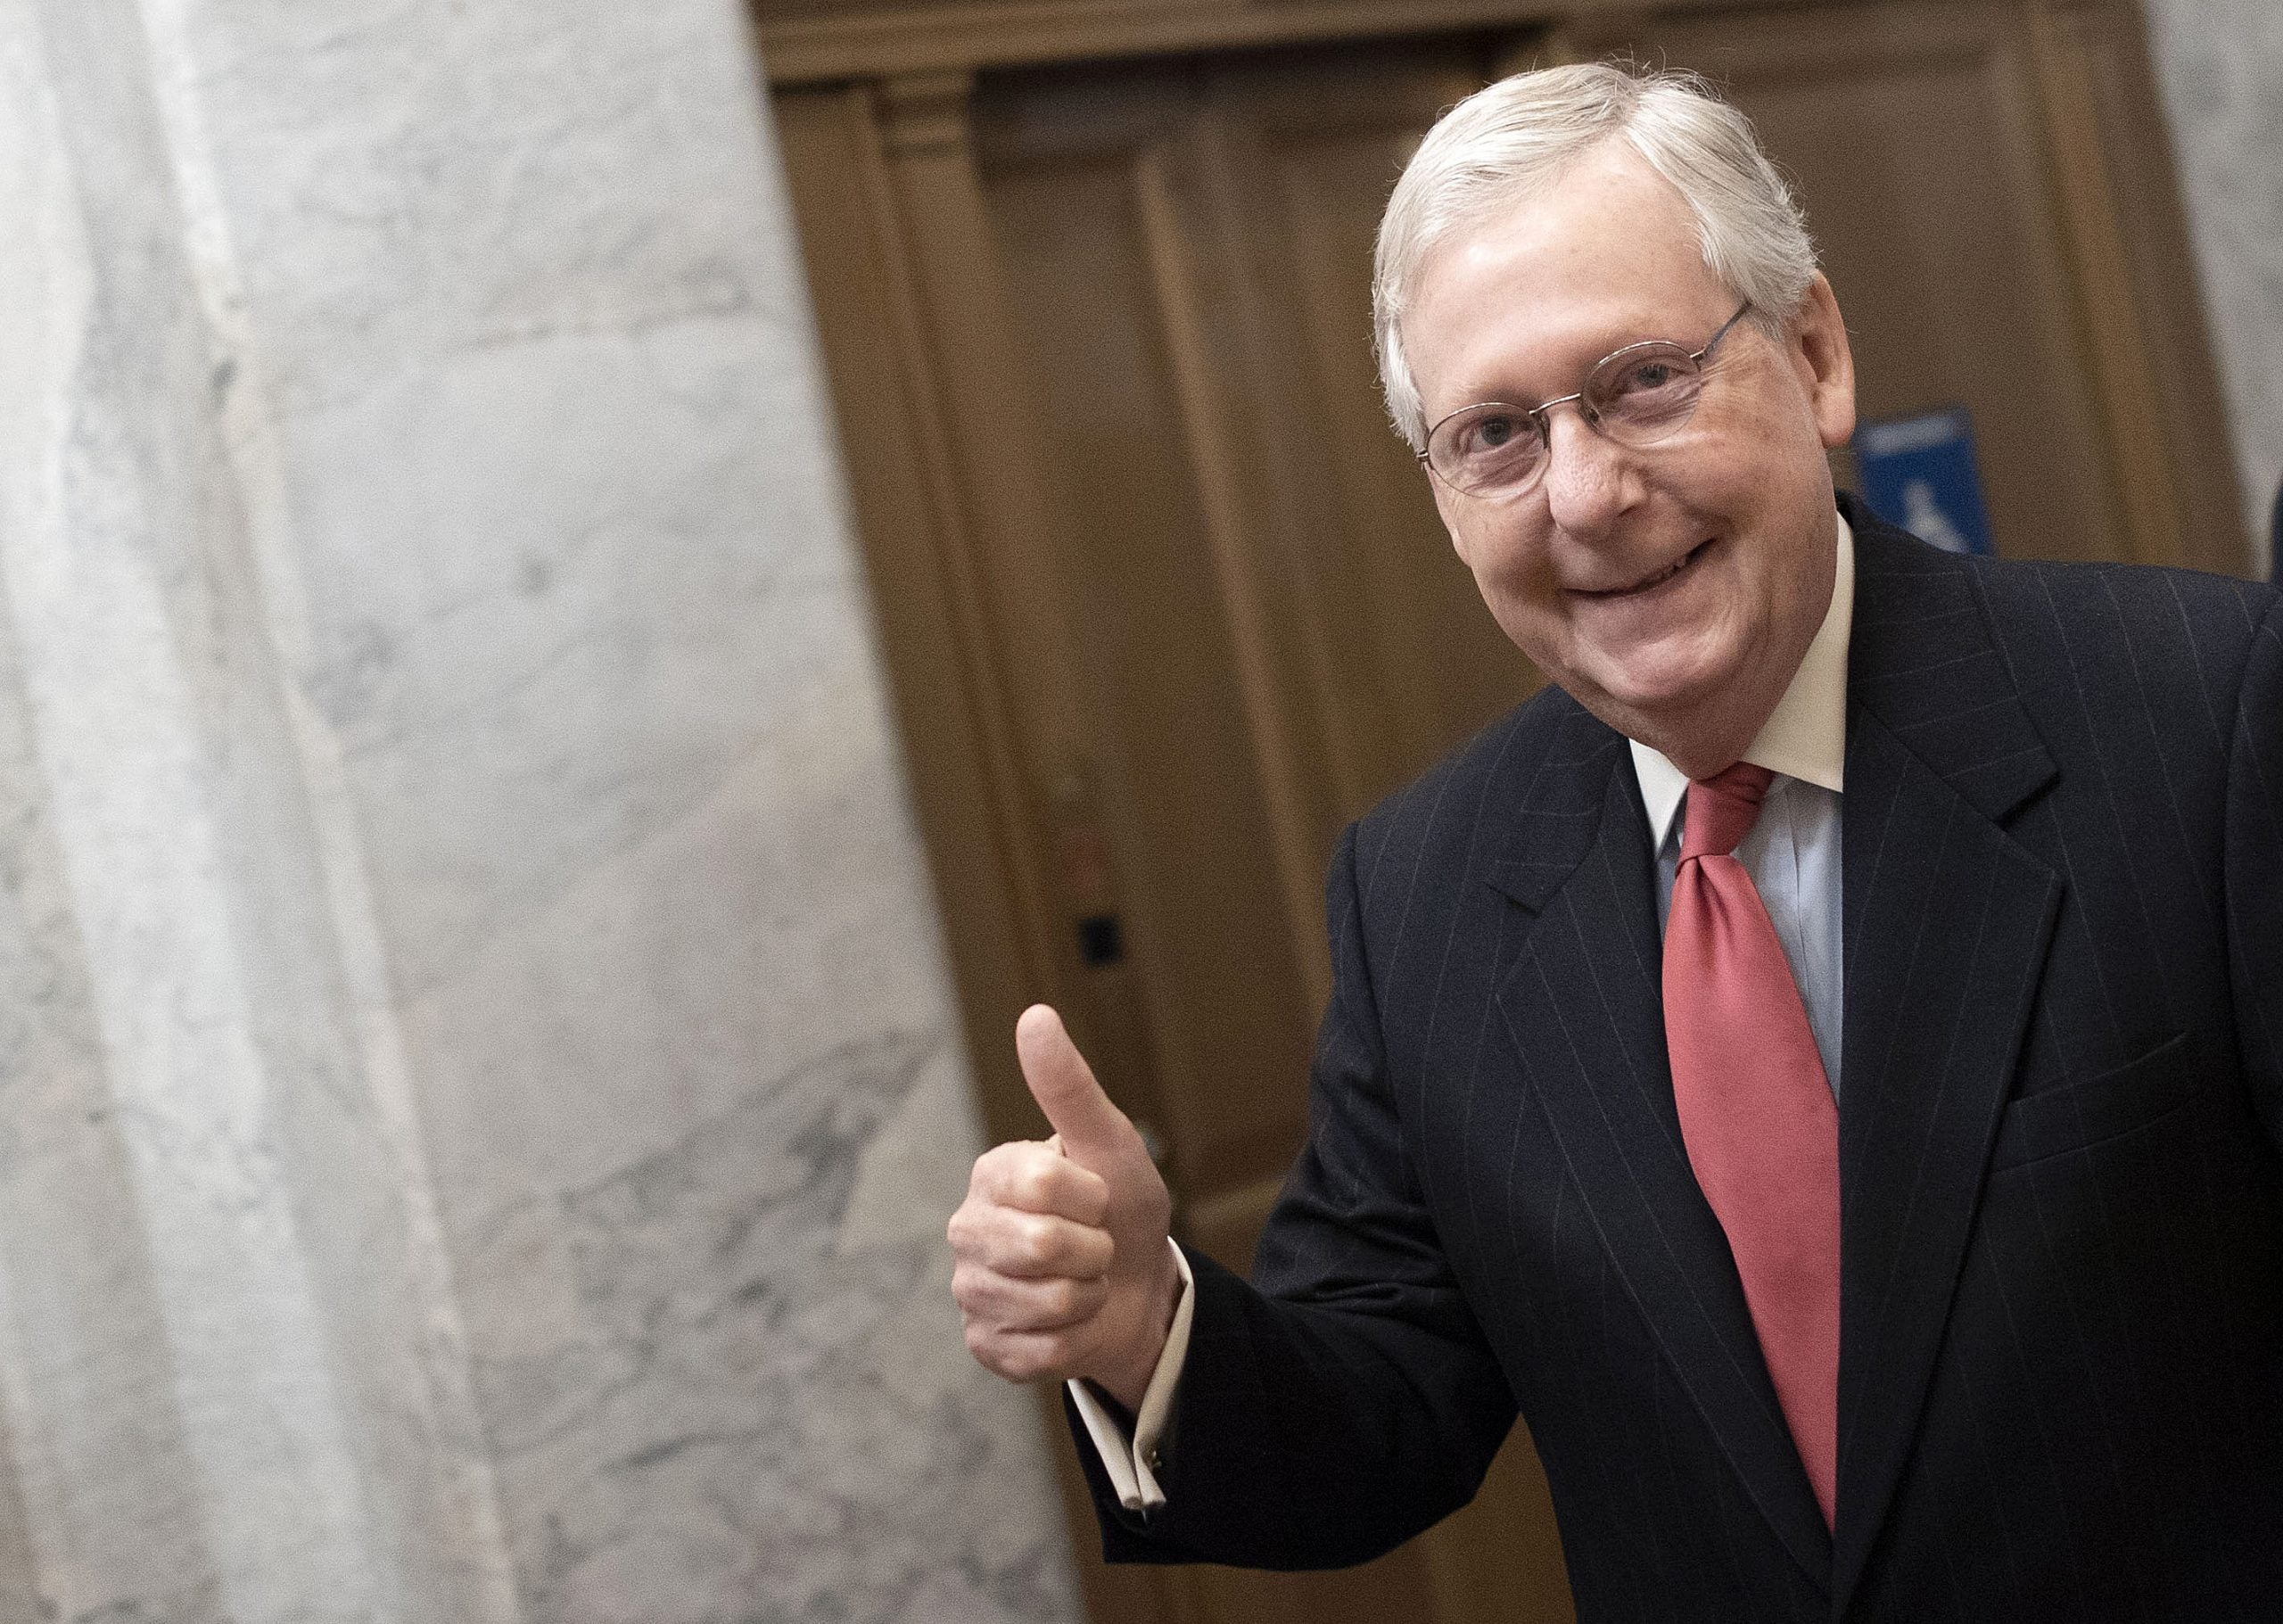 Senate stimulus package allows for $1,200 bank deposit for most Americans